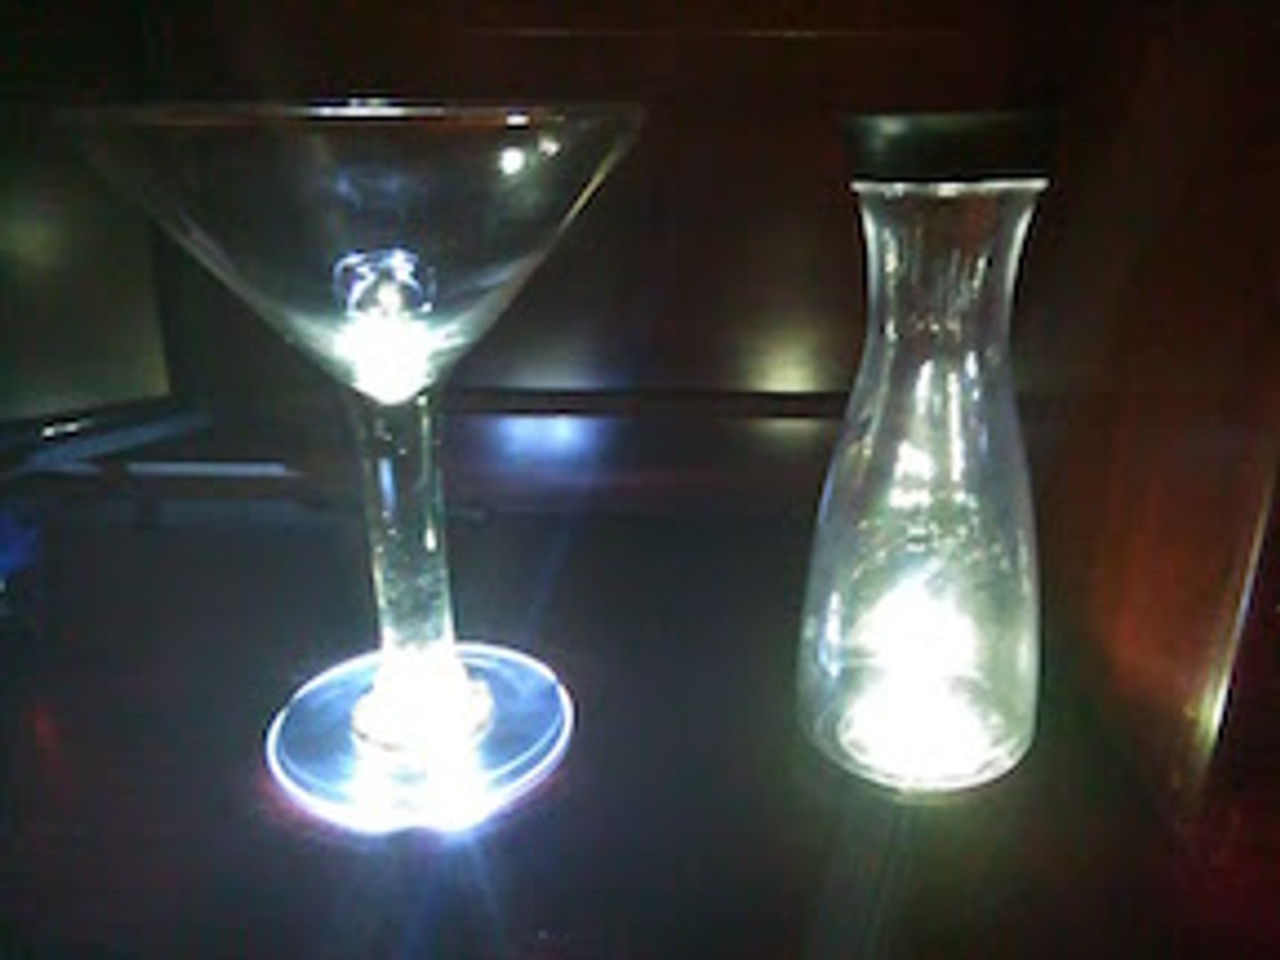 LED-Martini-Champagne-Wine-Liquor-Bottle-Glow-Light-Up-Illuminated-Glorifier